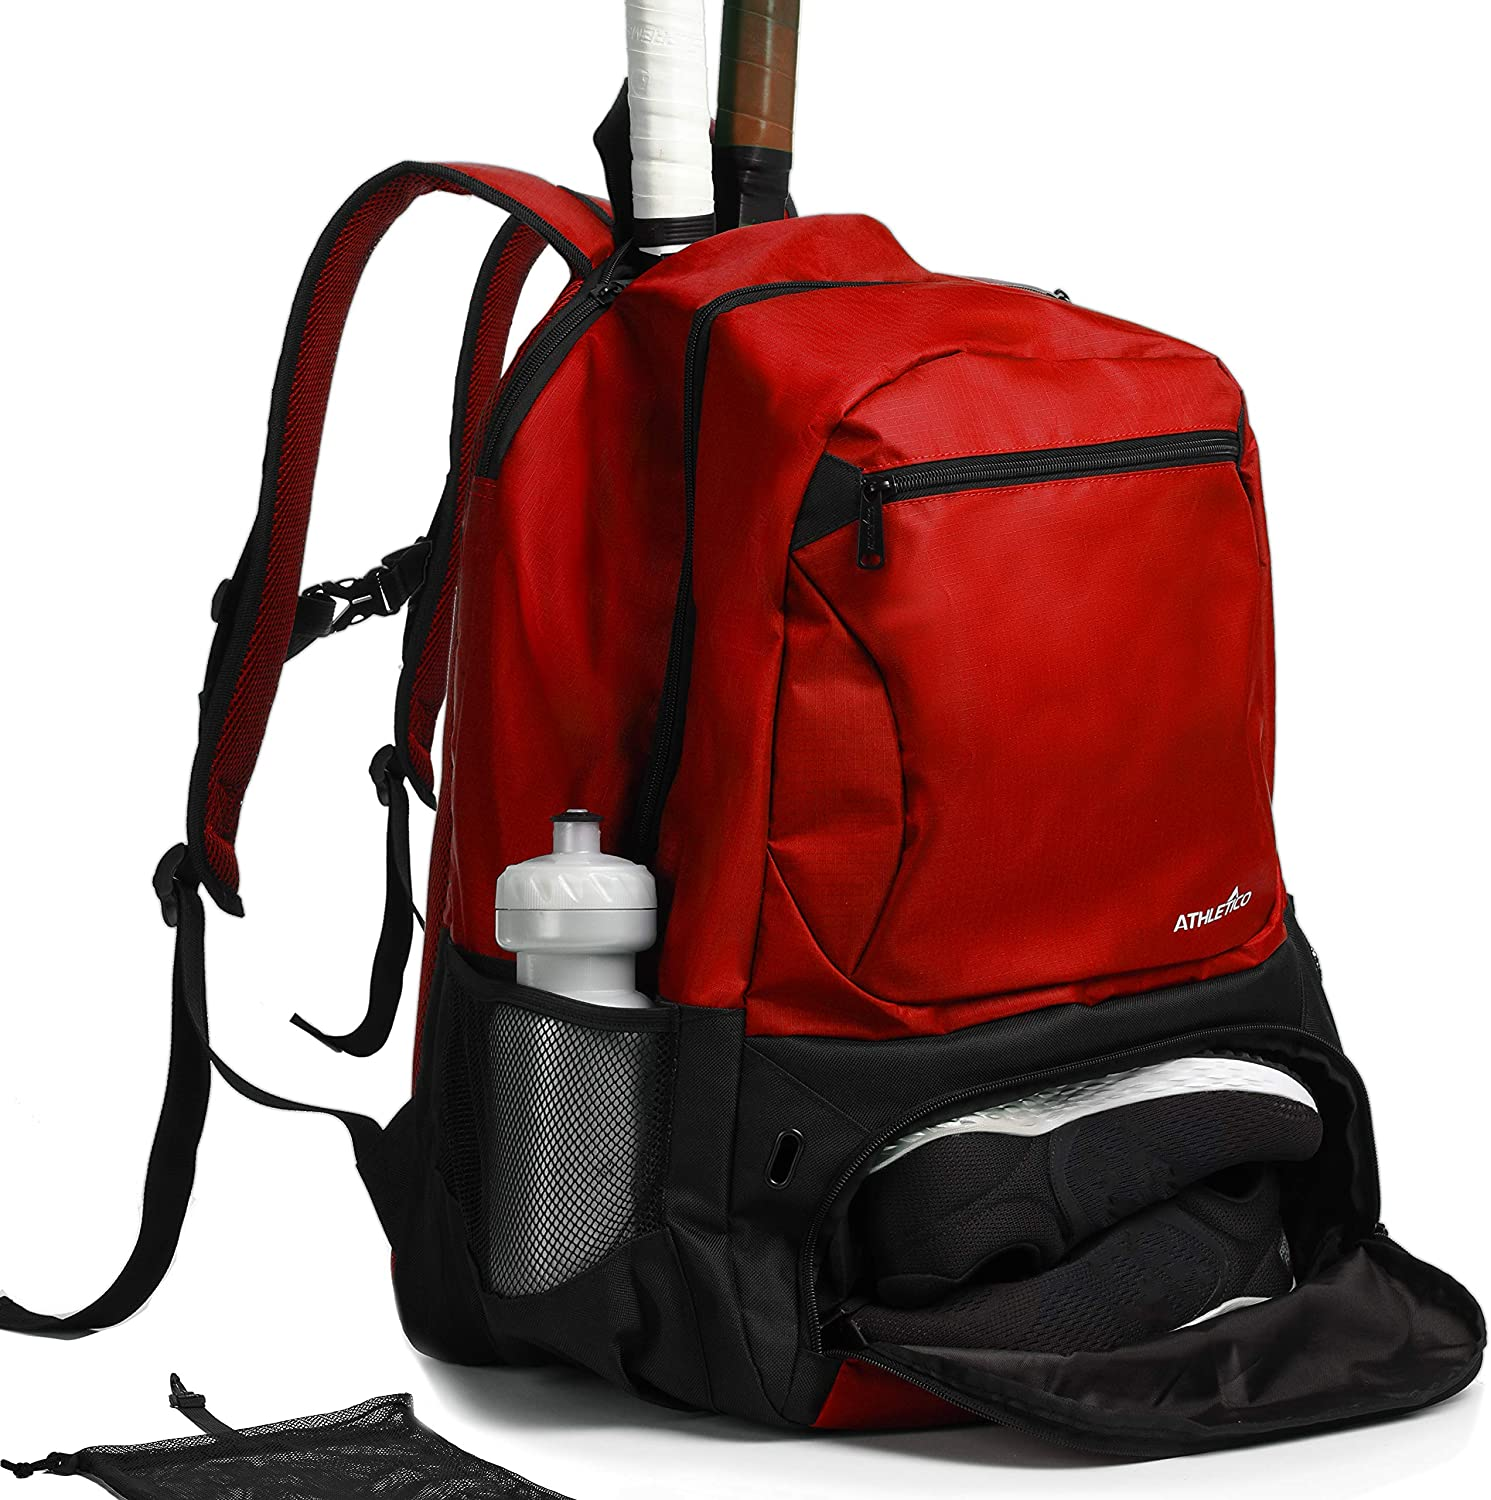 Limited time trial price Athletico Premier Tennis Backpack Inexpensive - Holds Rackets 2 Bag i